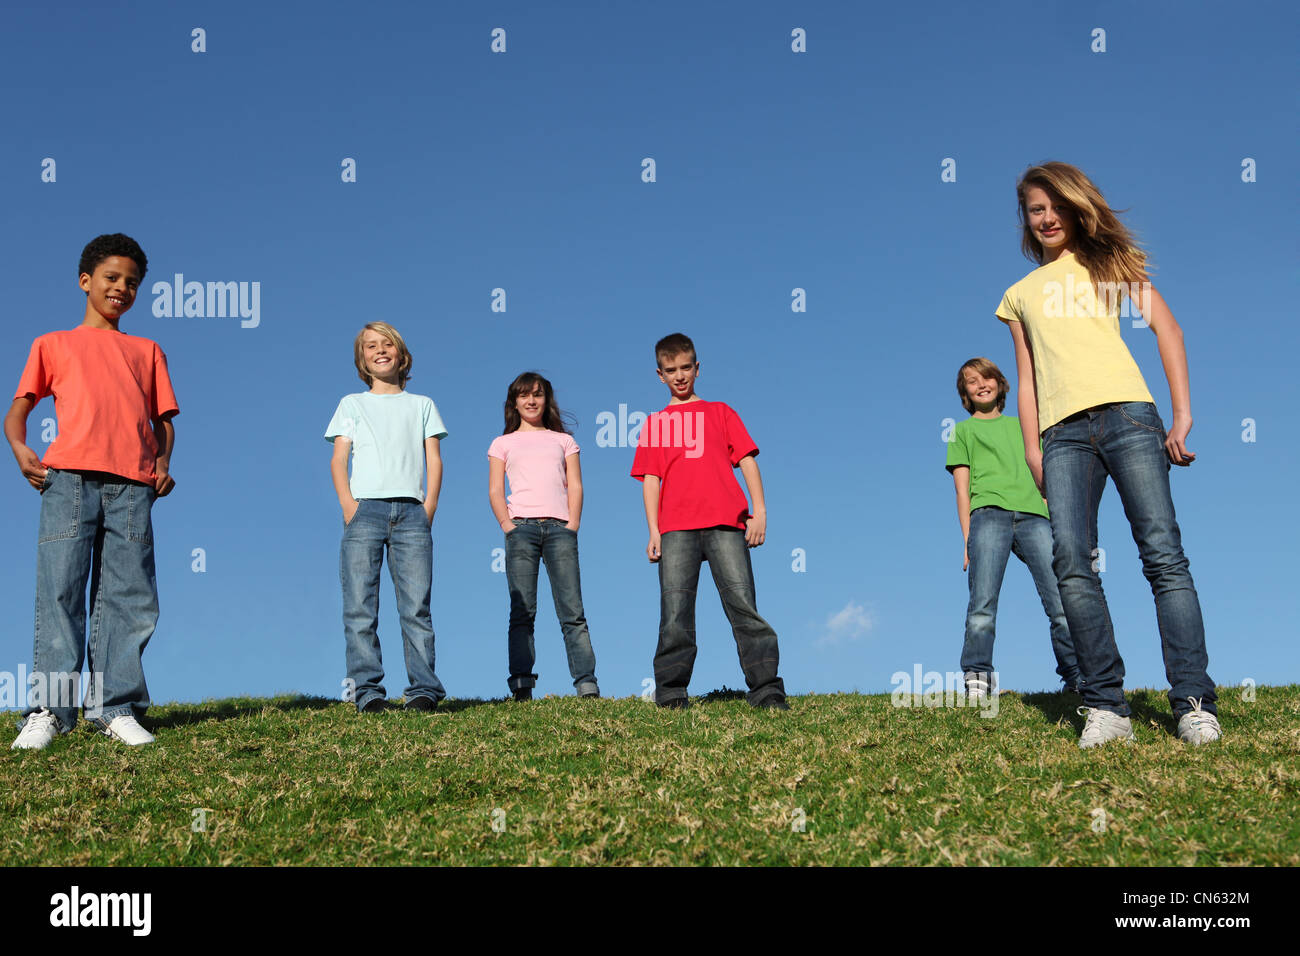 group of diverse kids in blank t shirts - Stock Image